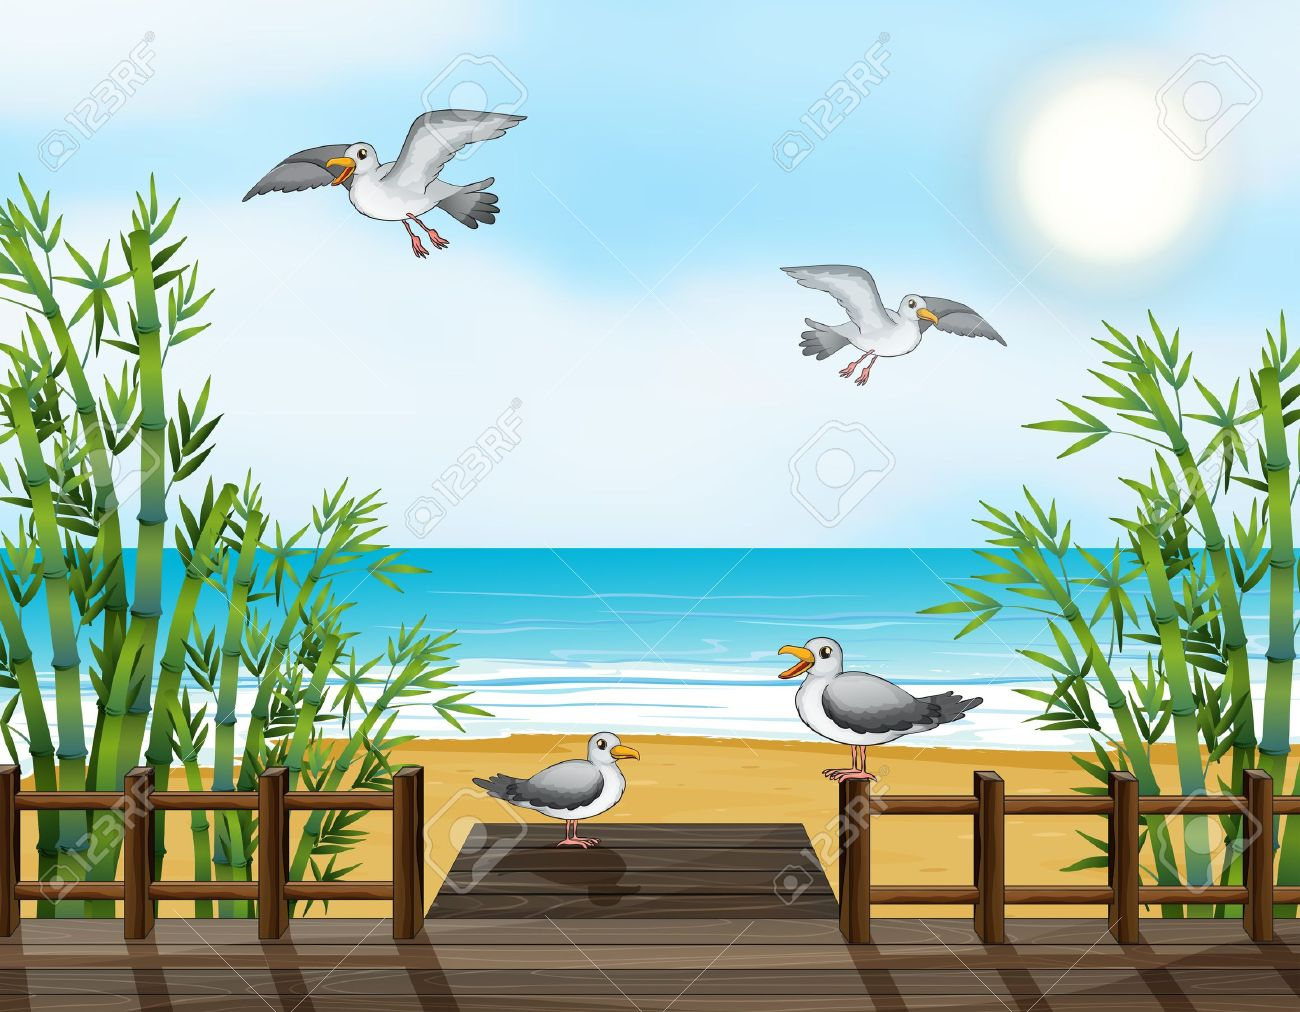 Flock Of Birds clipart #2, Download drawings